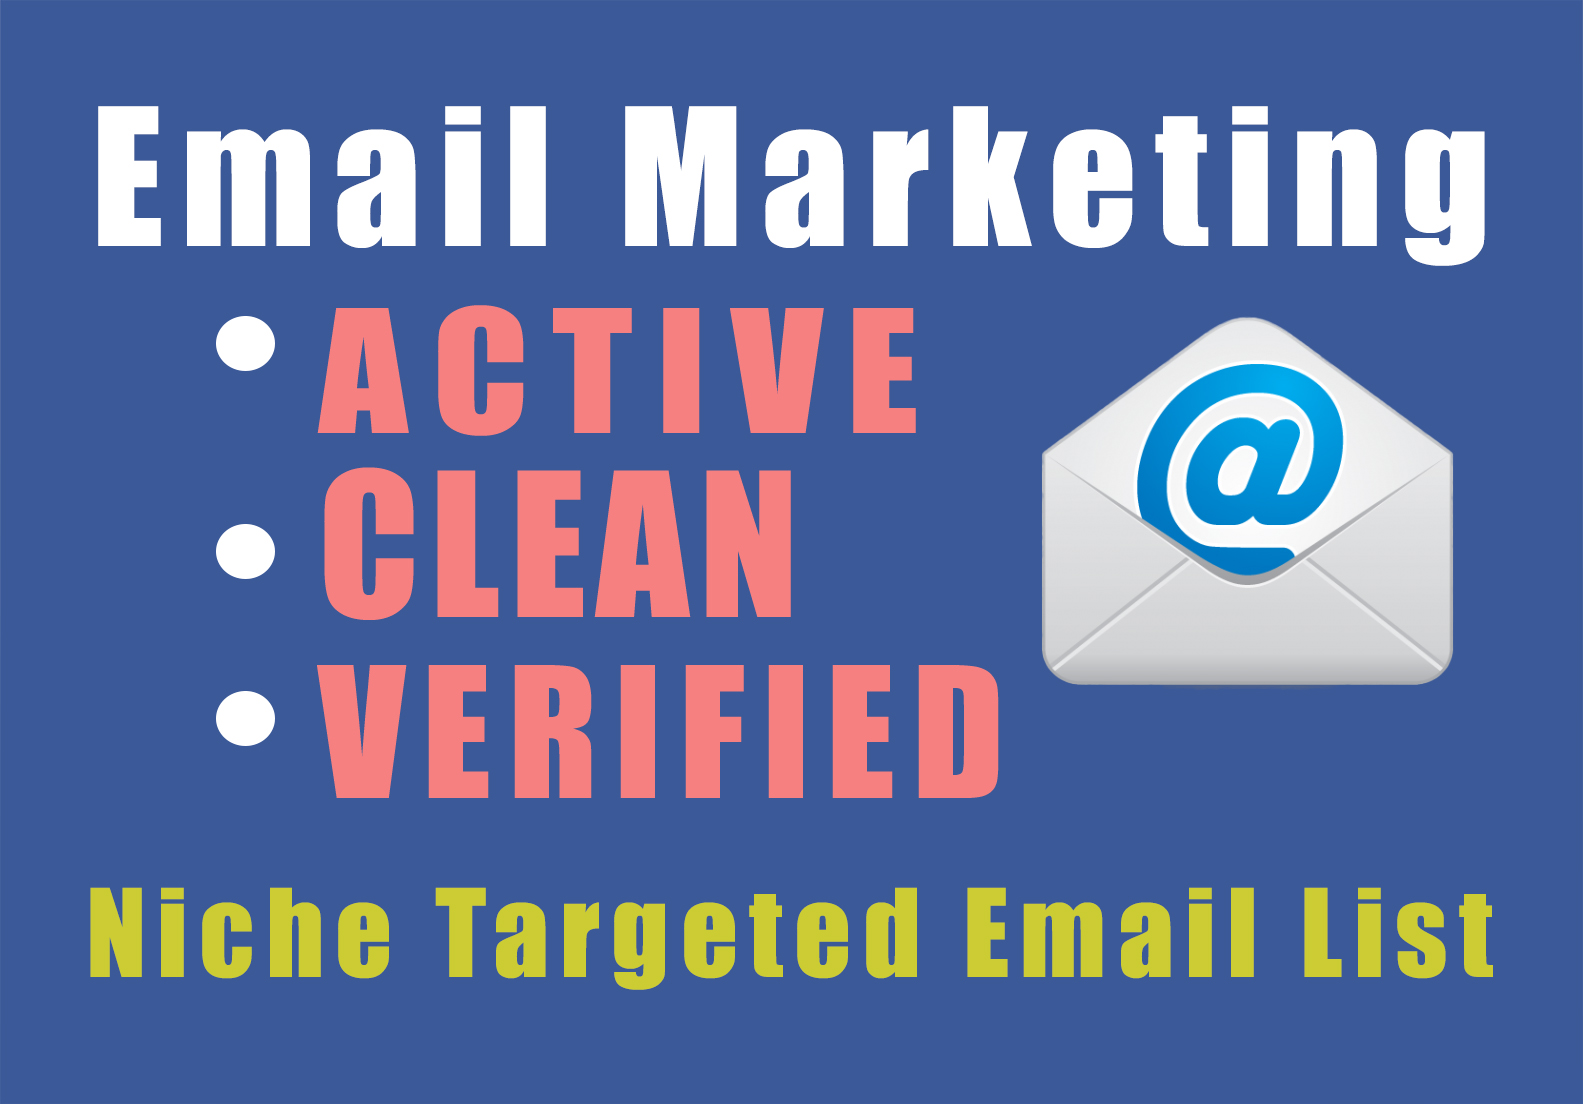 Provide you world wide 1000 Email list for marketing your business